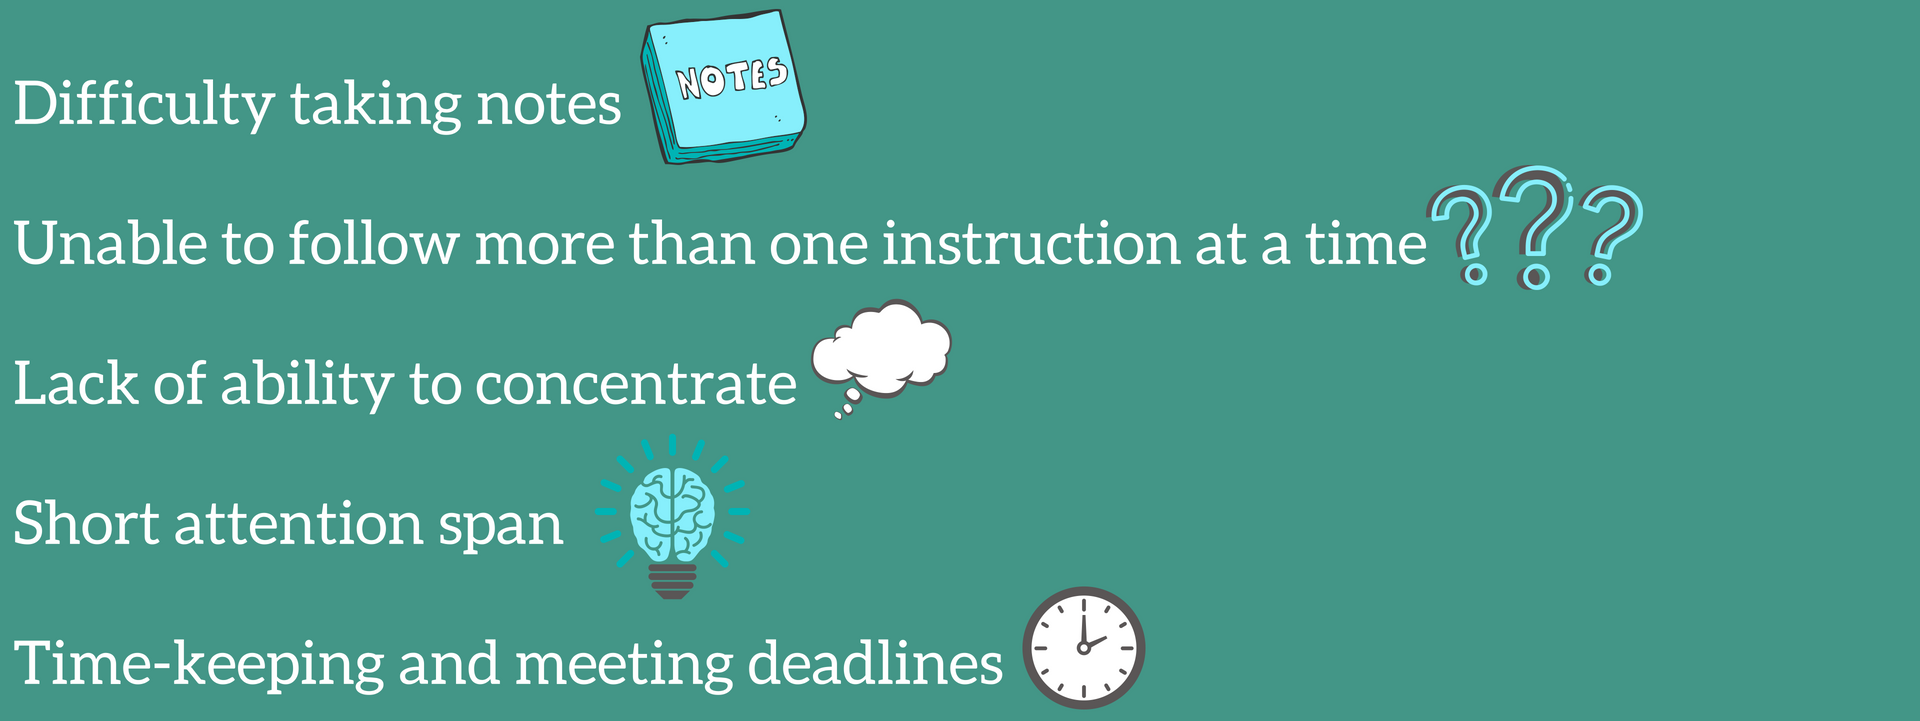 Difficulty taking notes, Unable to follow more than one instruction at a time, lack of ability to concentrate, short attention span, time-keeping and meeting deadlines.